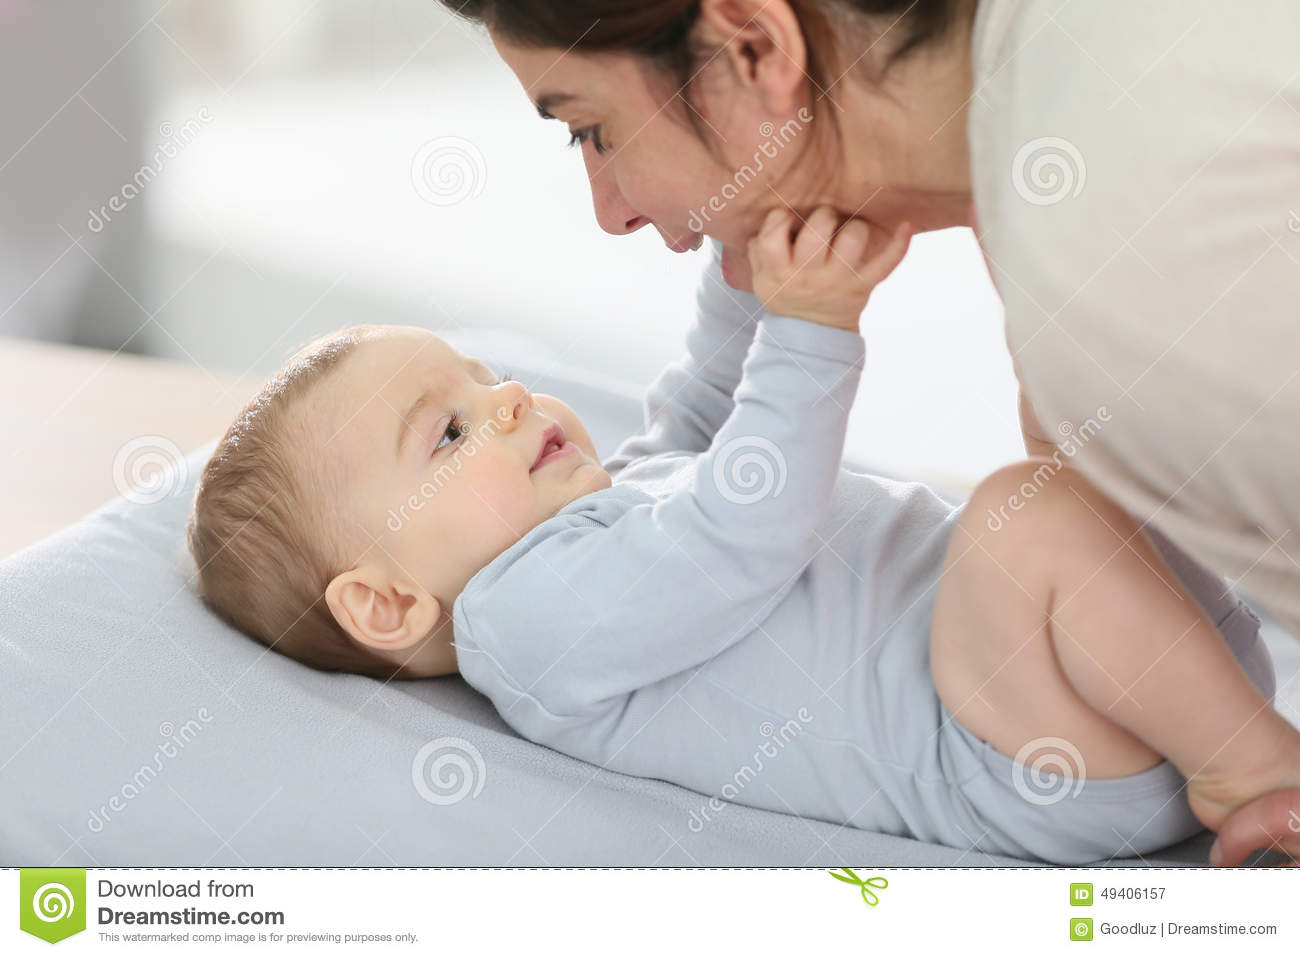 Merveilleux Download Mother And His Baby Cuddling On Bed Stock Image   Image Of Adult,  Laying